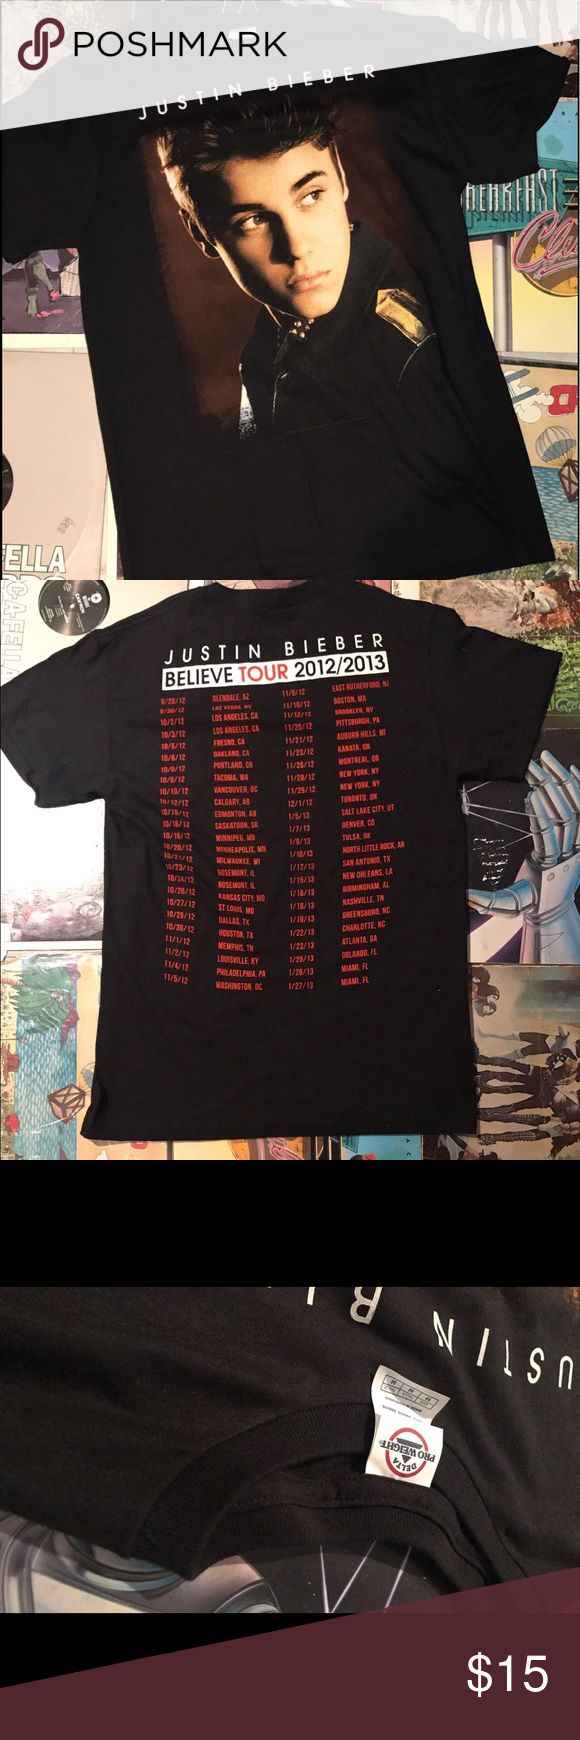 "Justin Bieber Concert T Shirt 2013 Justin Bieber Concert T Shirt . Front Side Displays A Screen Printed Justin Bieber and Tour Date Stops Listed on The Back . No Discoloration Screen Prints Has No Cracks !  UV36 🔥🔥🔥🔥🔥  Pit2pit:19""  Length:29""  Collar2sleeve:14"" Conert Shirt Shirts Tees - Short Sleeve"